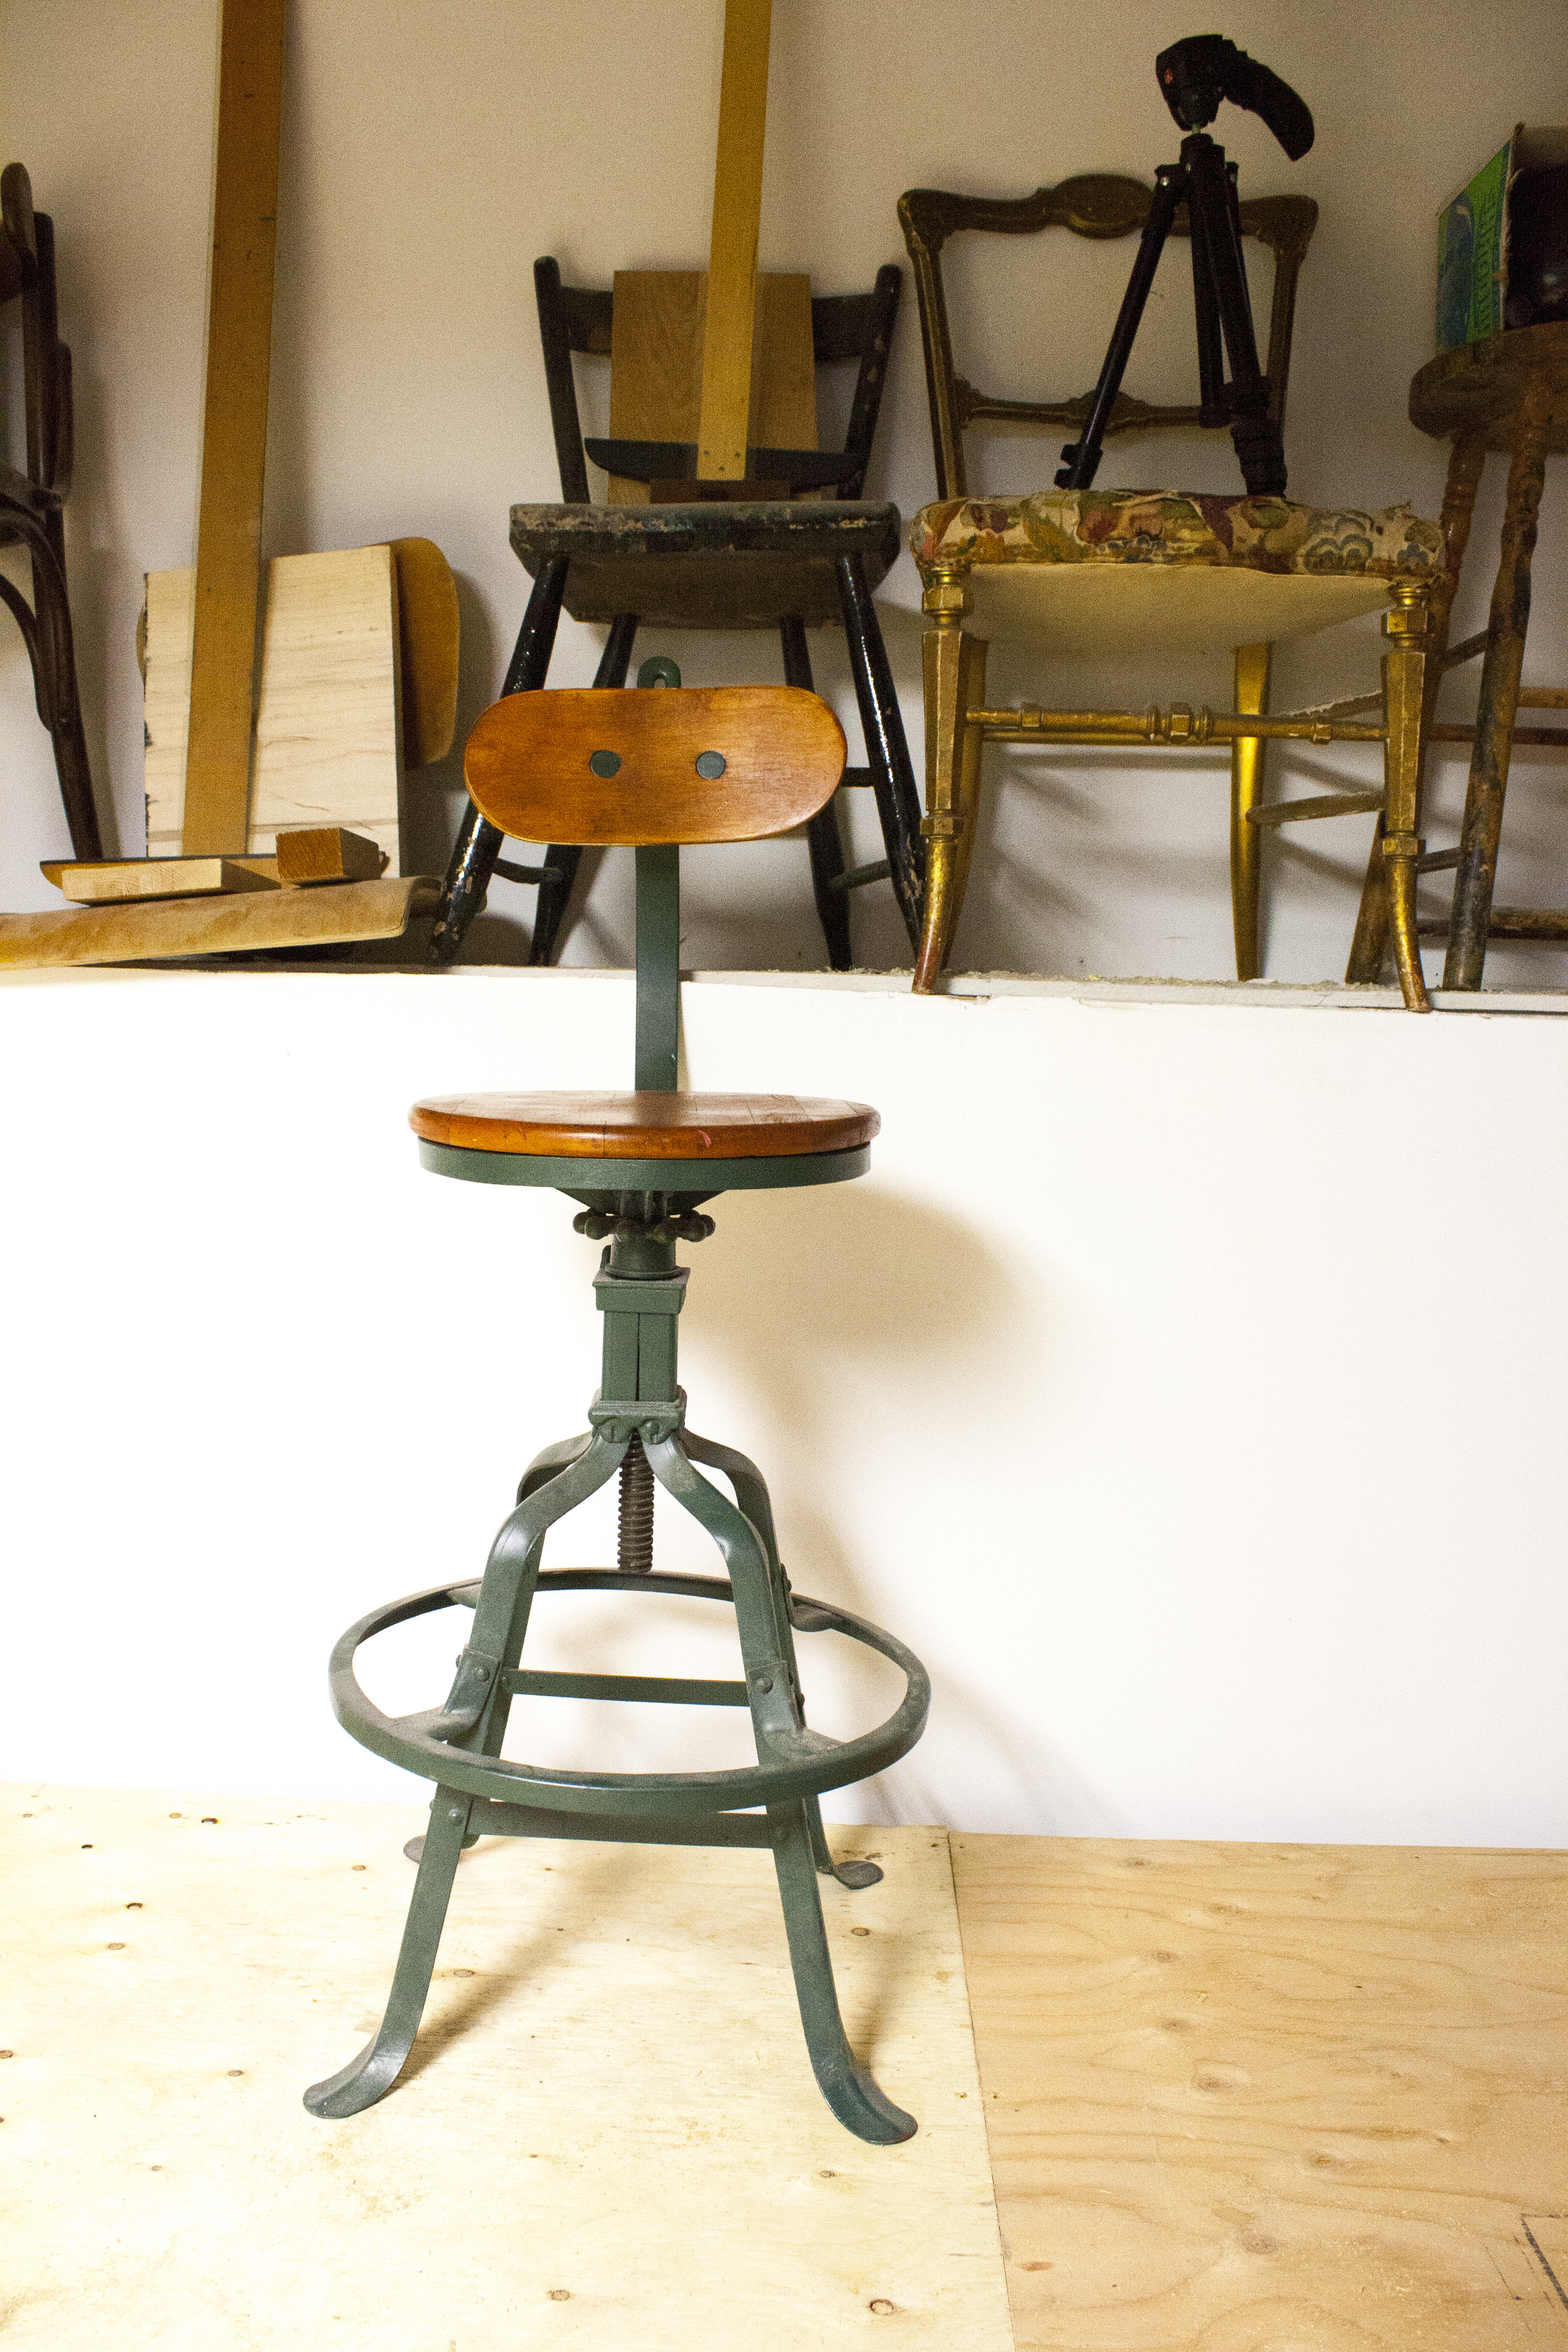 This industrial chair is one of Markian's father's orginal drafting chairs from the 1970's. Like father, like son.